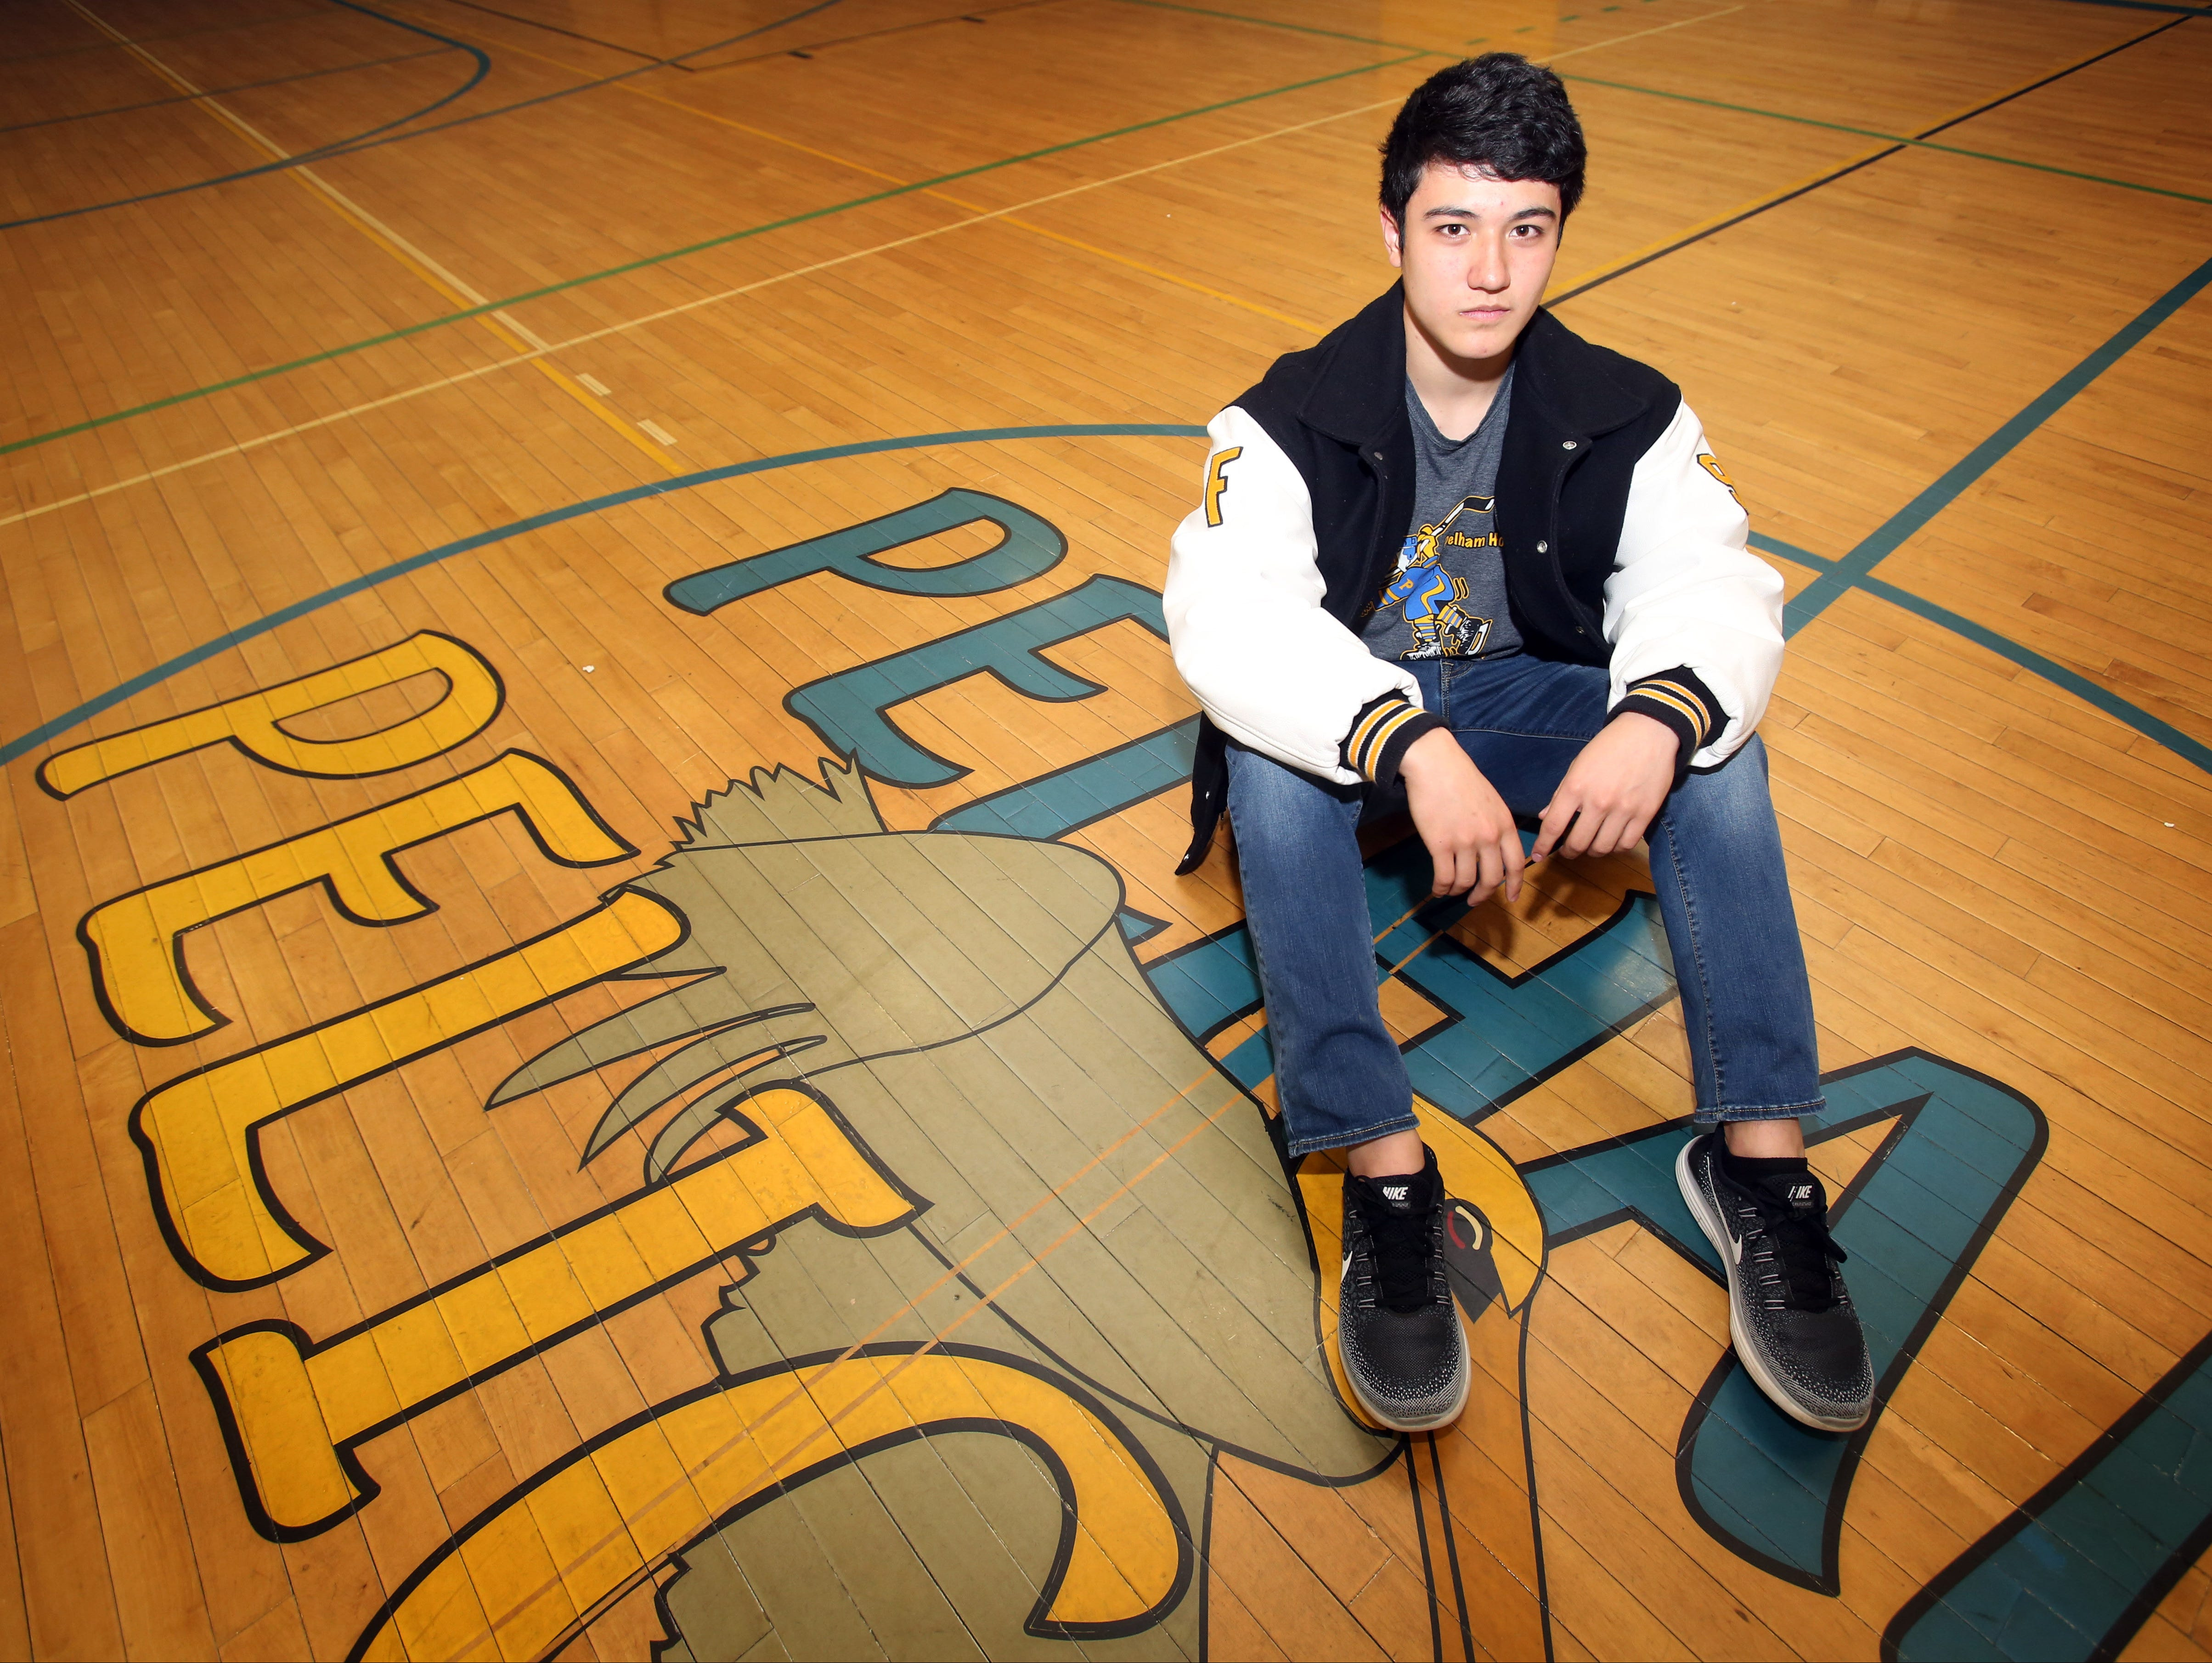 Pelham junior forward Ben Hurd is The Journal News hockey player of the year. Hurd was photographed at Pelham Middle School on April 6, 2016.